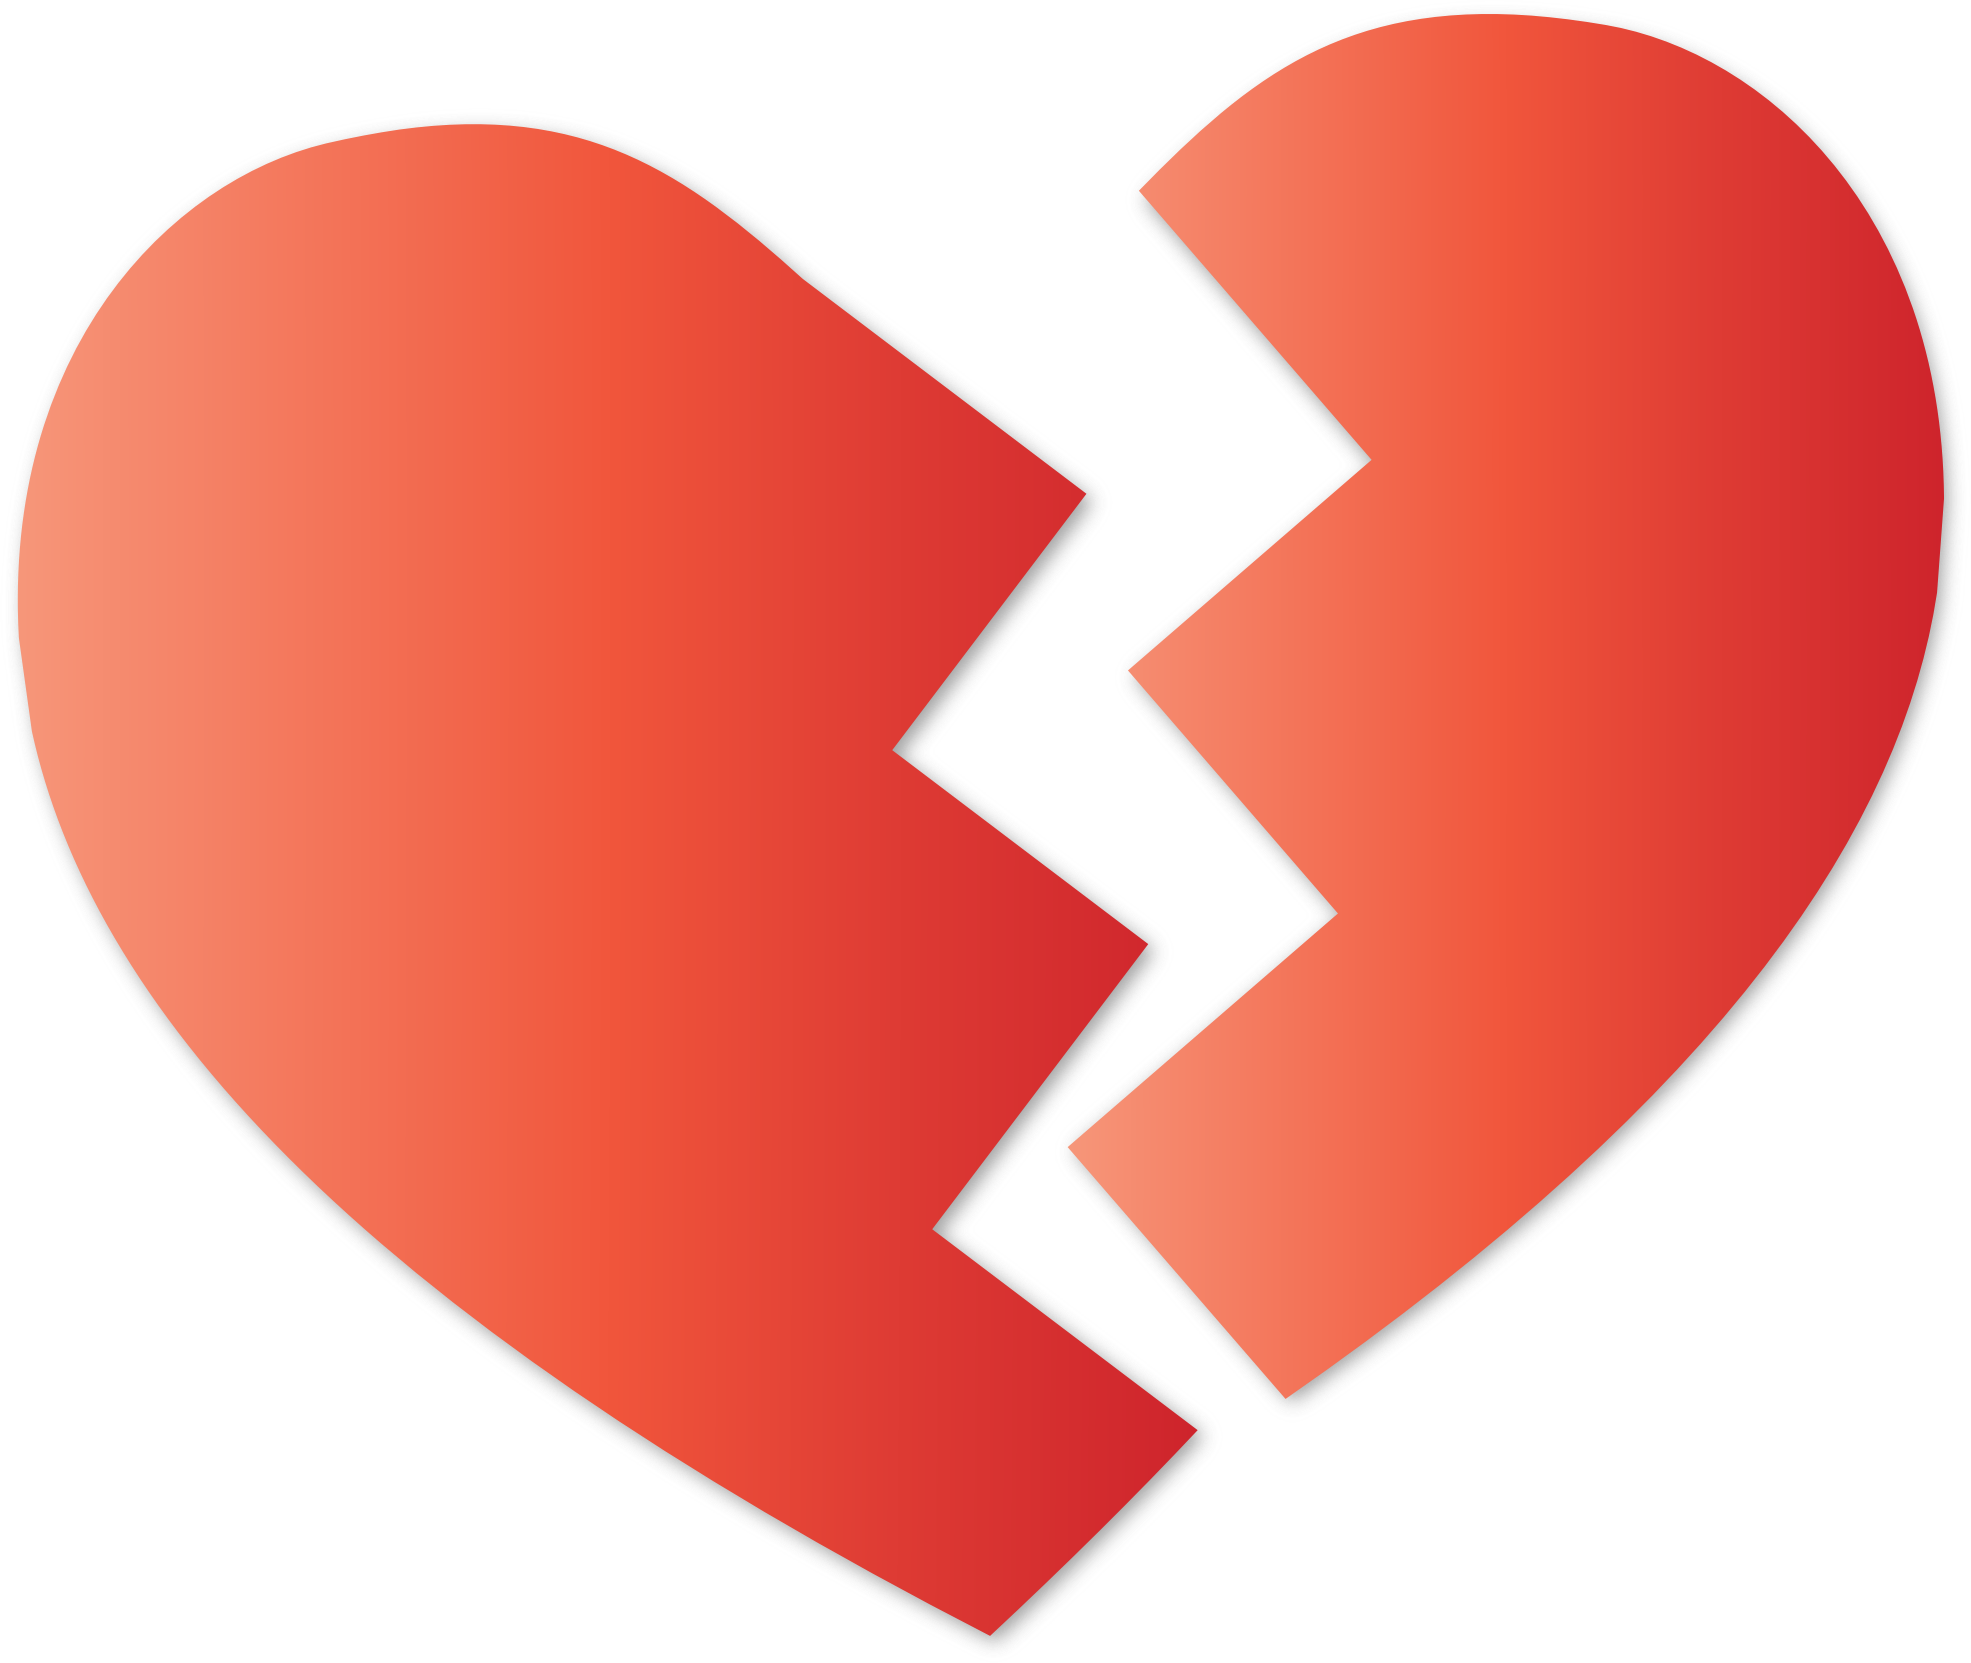 Broken heart transparent png. High quality image free